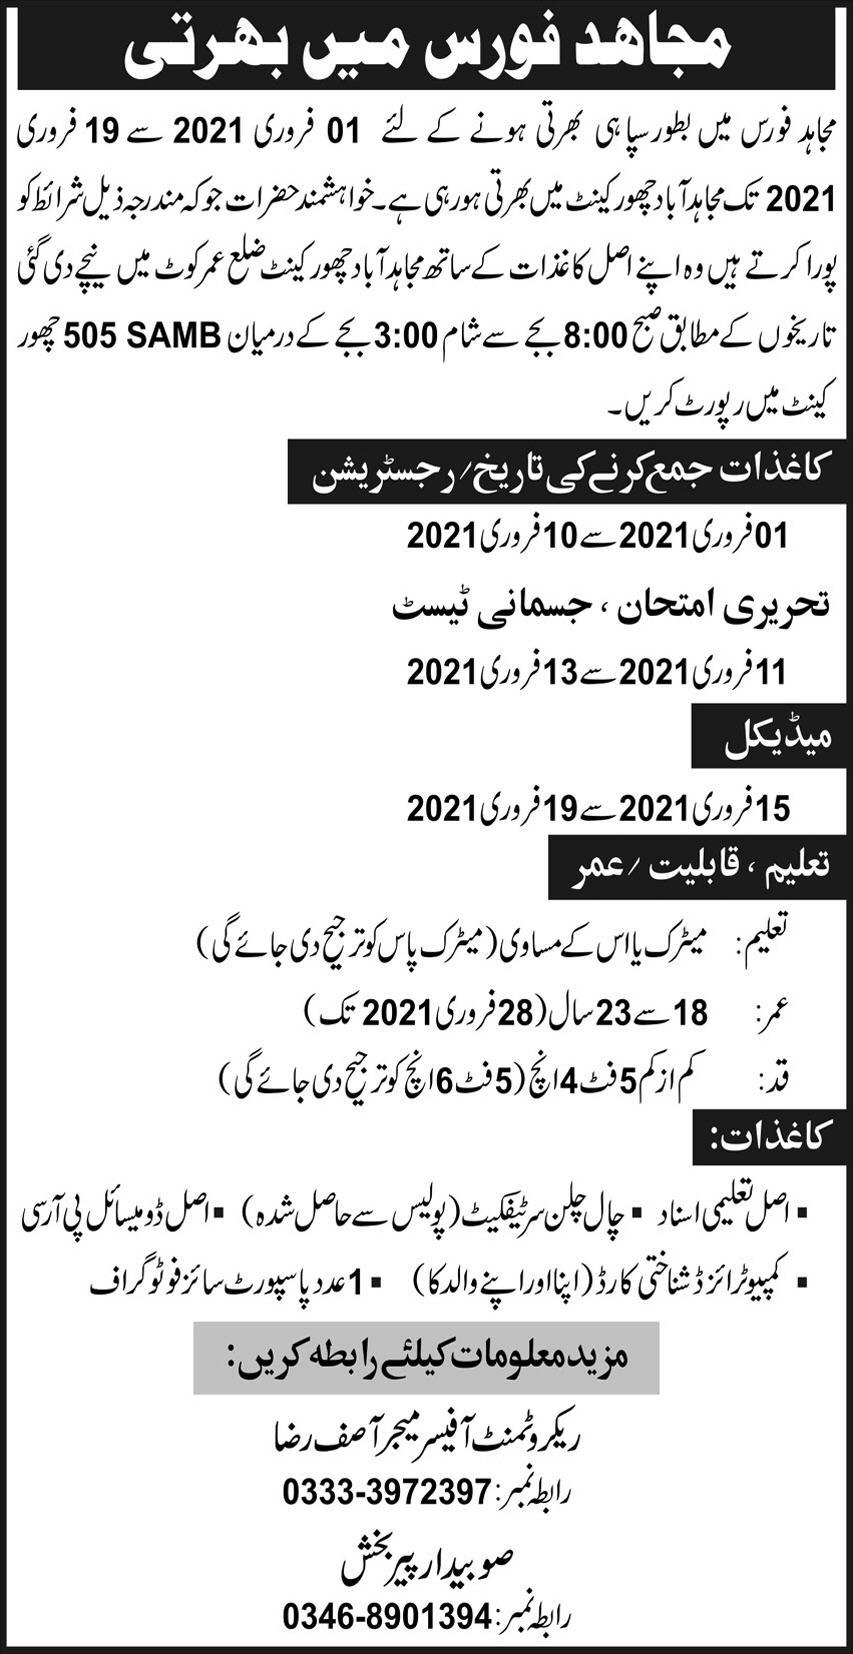 Pakistan Army Jobs 2021 - Mujahid Force Jobs 2021 - Sepoy Jobs 2021 - How to Join Pak Army 2021 - Pak Army New Jobs 2021